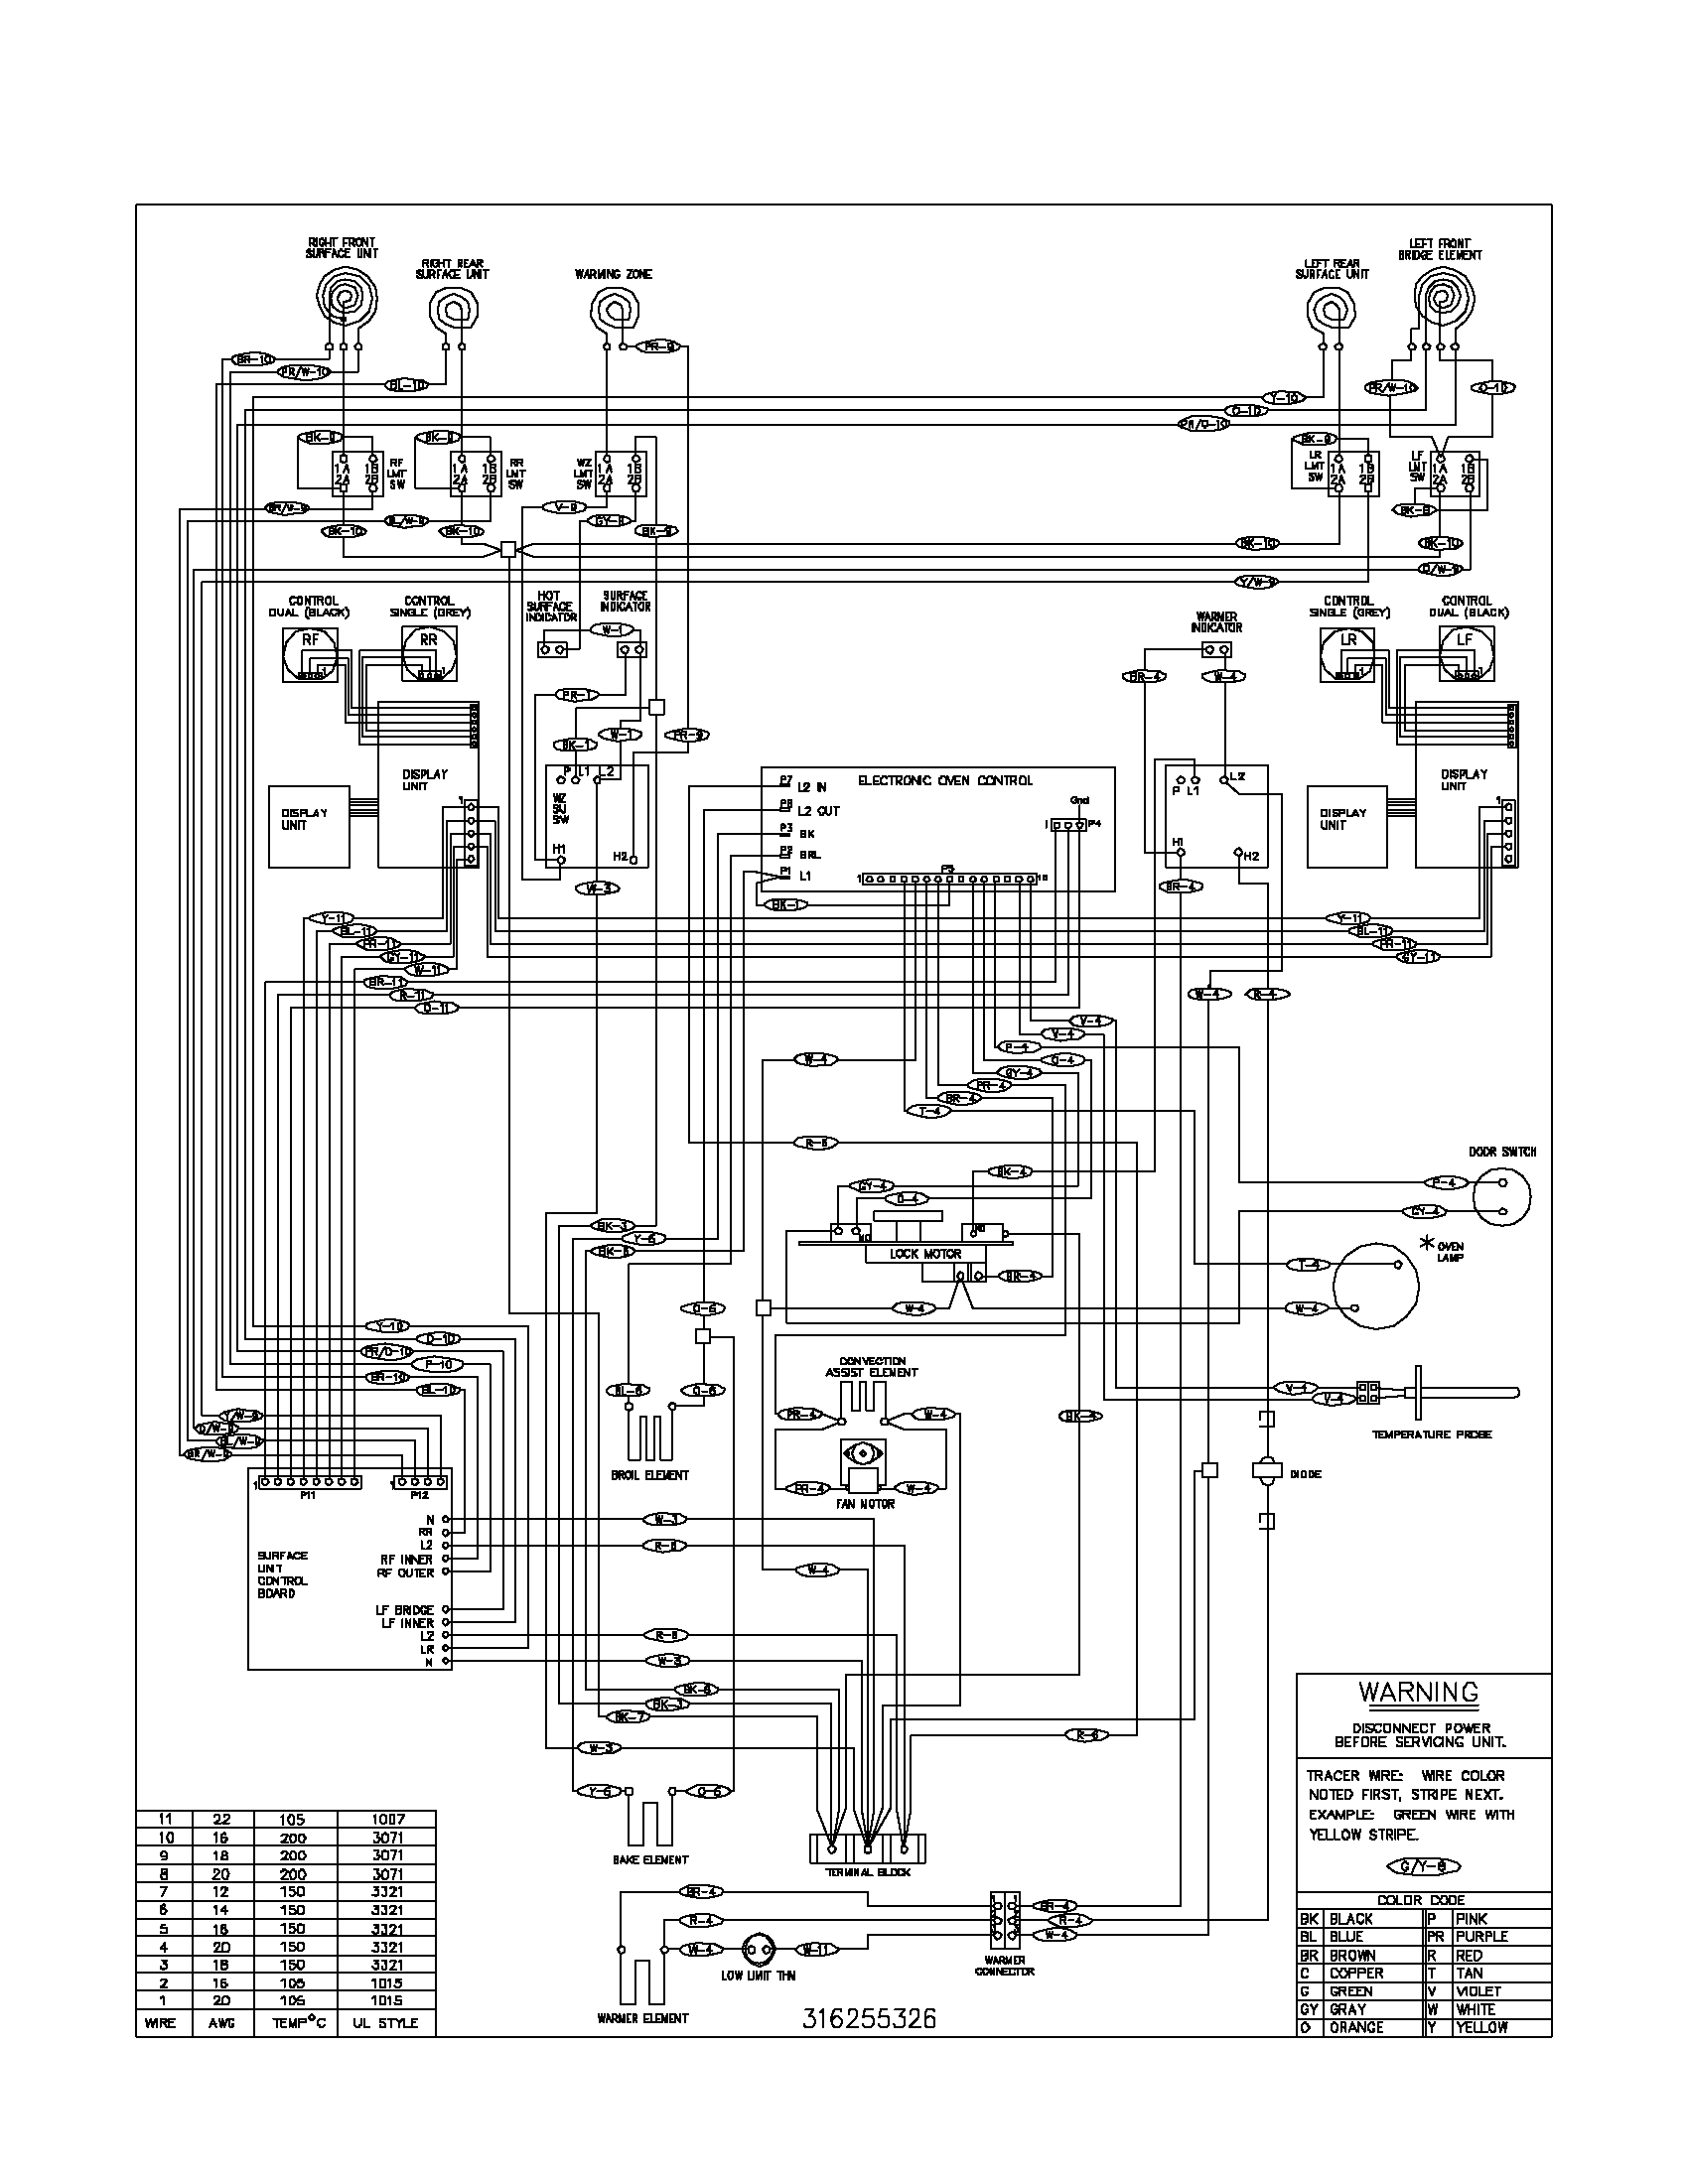 Wiring Diagram For Electric Range